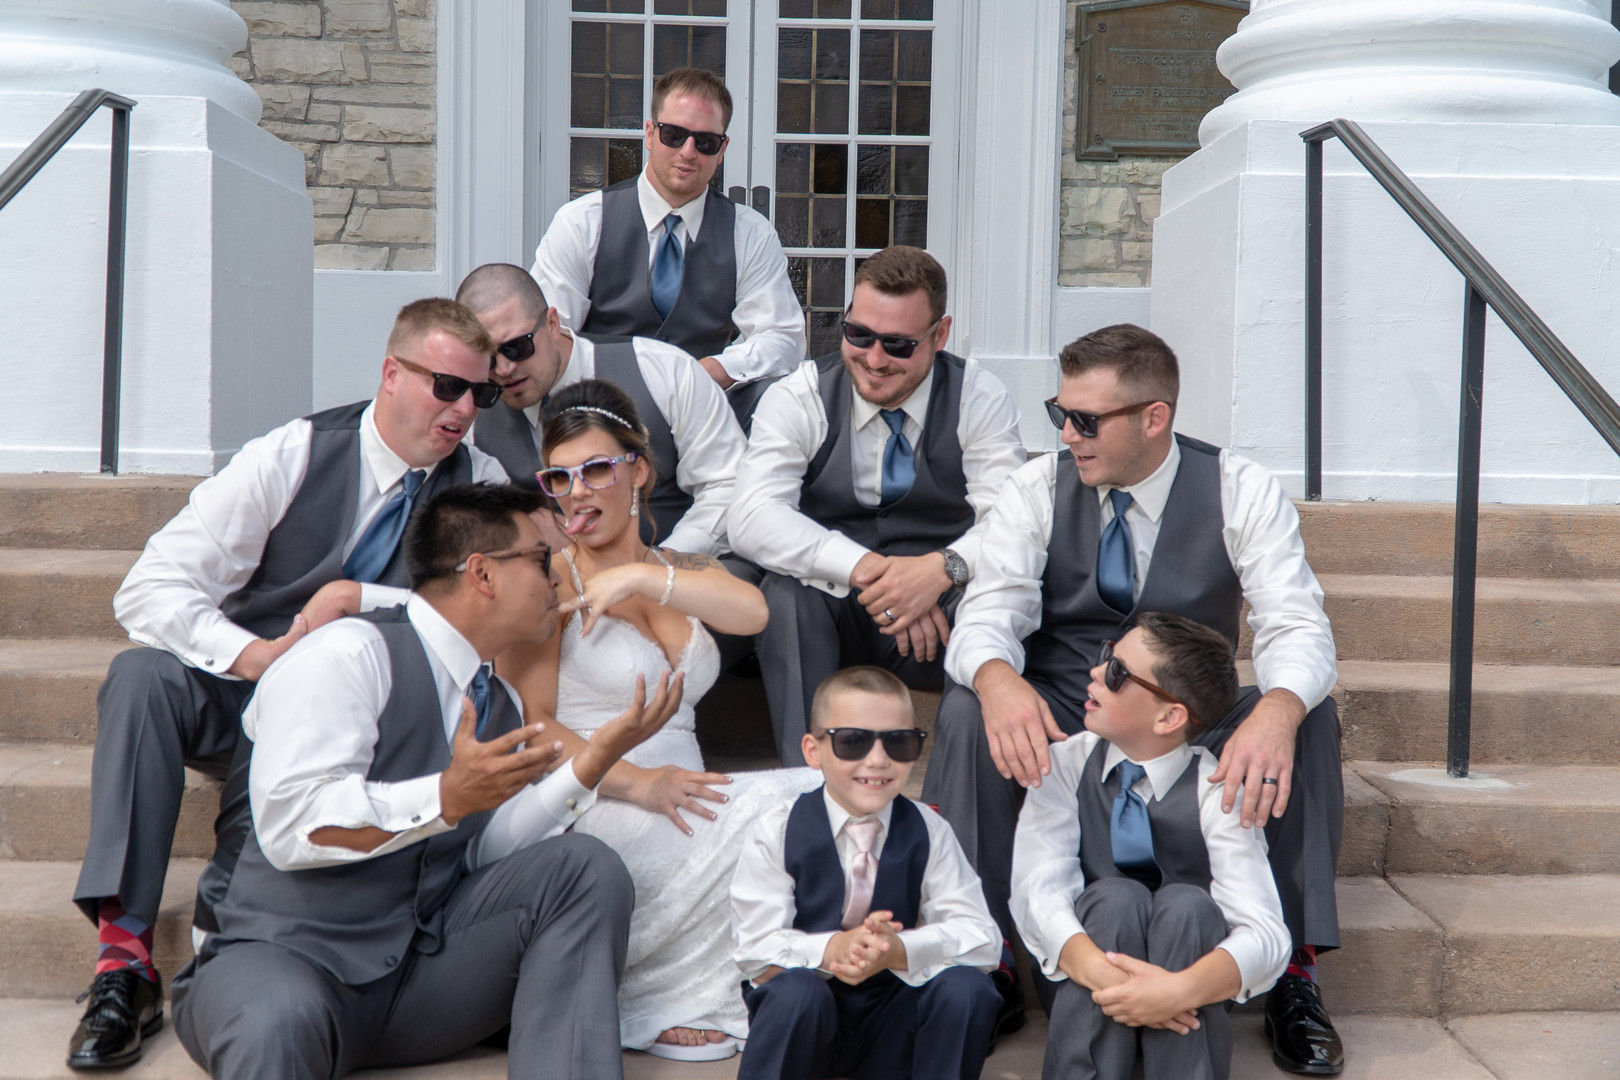 Belling_Belling_JoshRussellWeddings_DSC08583_big.jpg